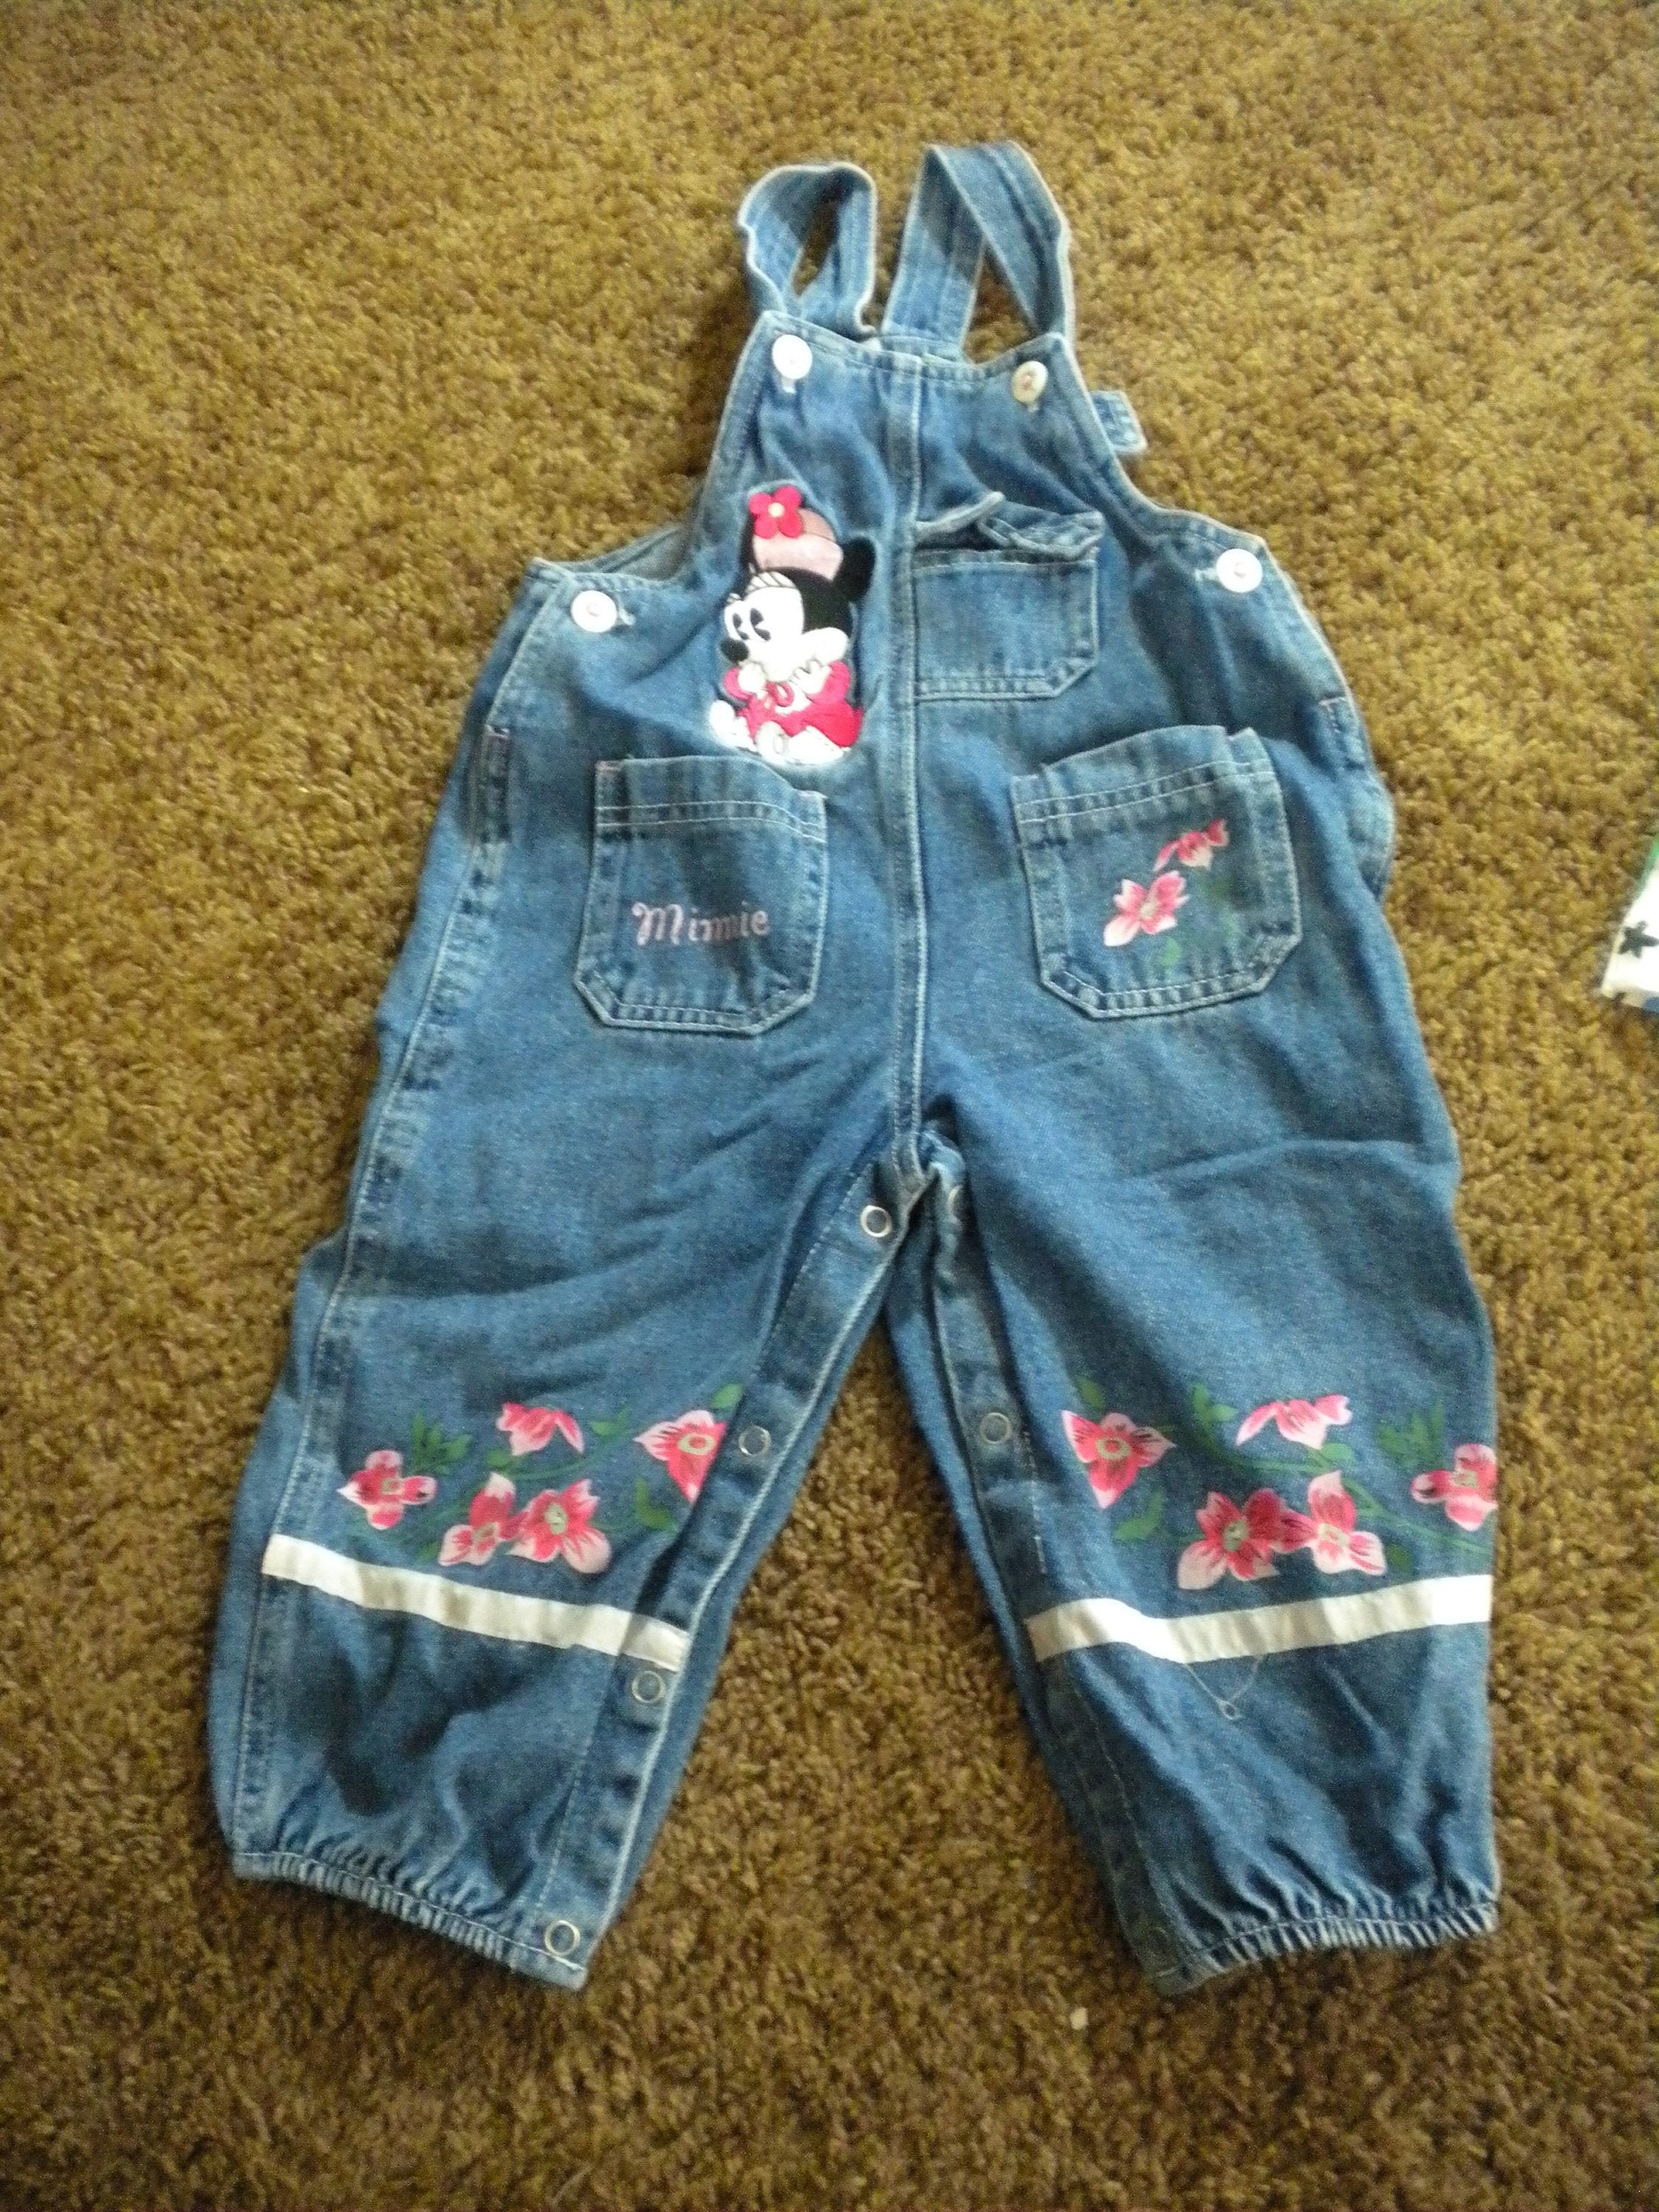 Vintage Overalls & Jumpsuits Vintage Mickey  Co Baby Minnie Mouse Overalls Sz 18M Pink Flowers Fun 90S Denim Vibe  V2 $35.00 AT vintagedancer.com